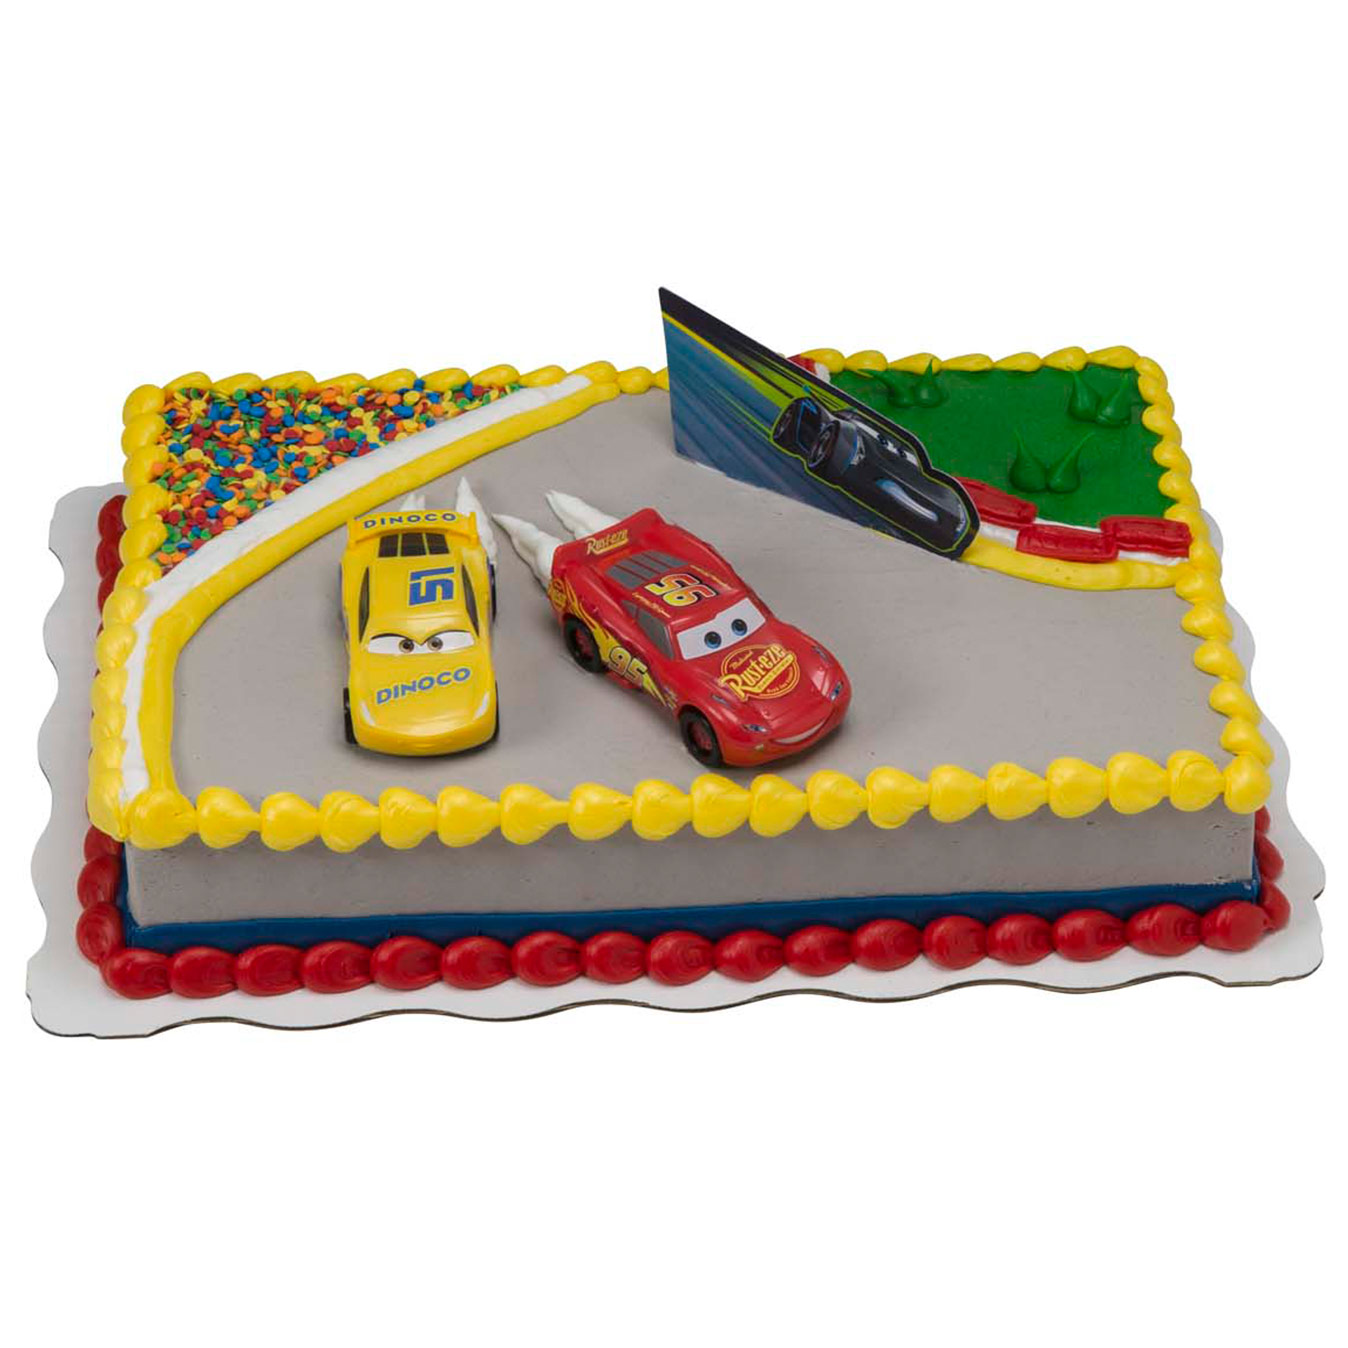 Groovy Cars 3 Ahead Of The Curve Kit Cake Walmart Com Walmart Com Birthday Cards Printable Opercafe Filternl